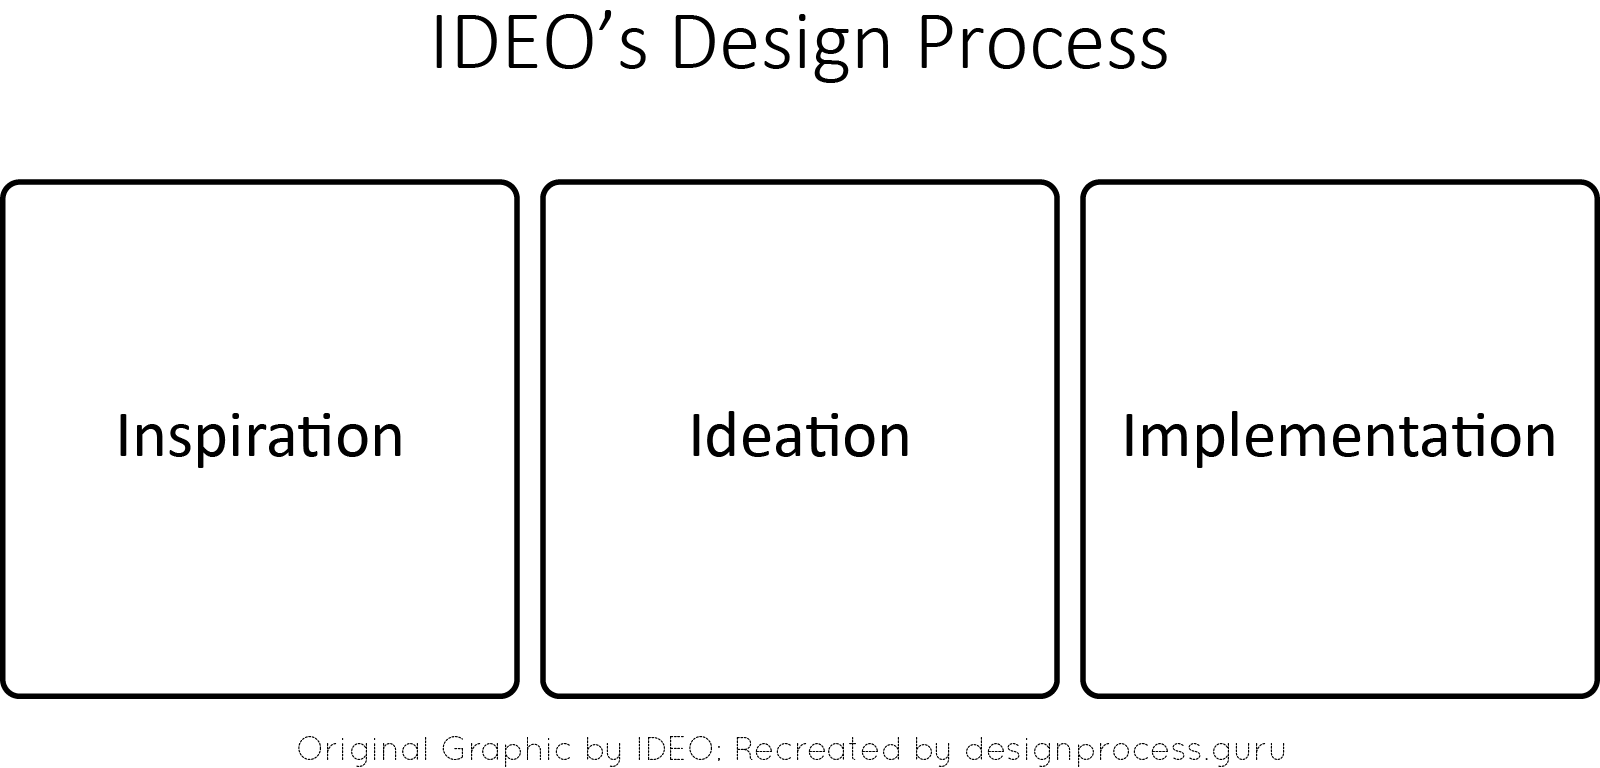 IDEO's 3 Stage Process